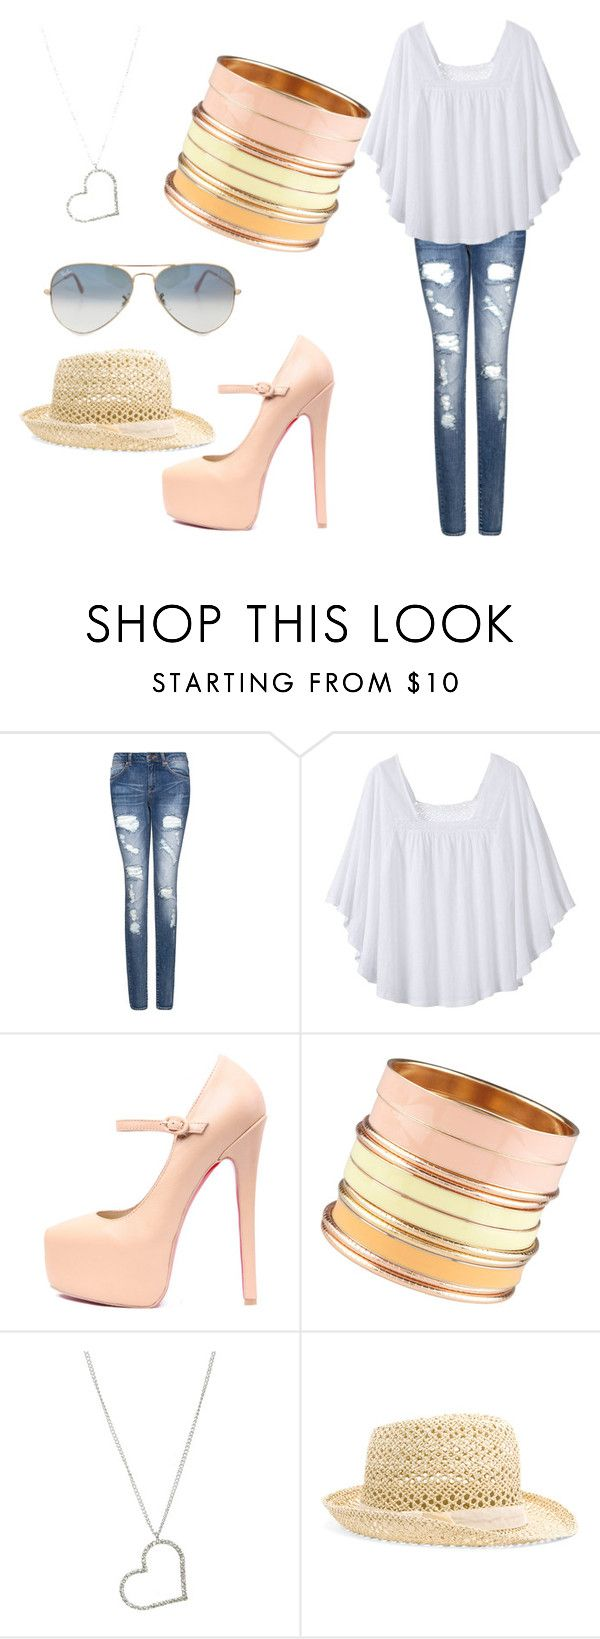 """""""Untitled #1"""" by immarriedtogeorgeweasley ❤ liked on Polyvore featuring MANGO, prAna, ALDO, Wet Seal and Ray-Ban"""